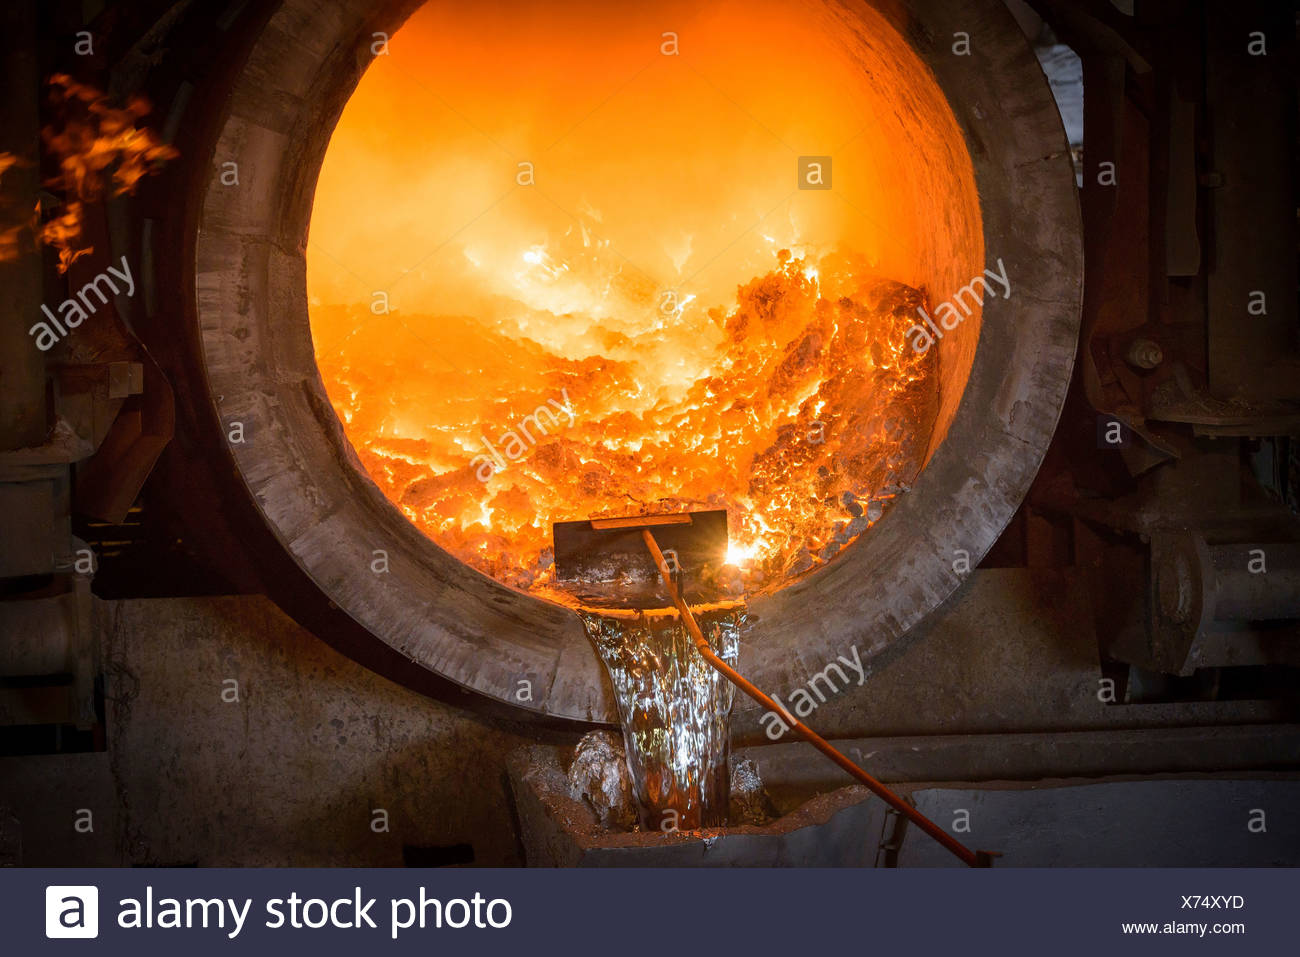 Raking liquid aluminum from furnace at recycling plant - Stock Image